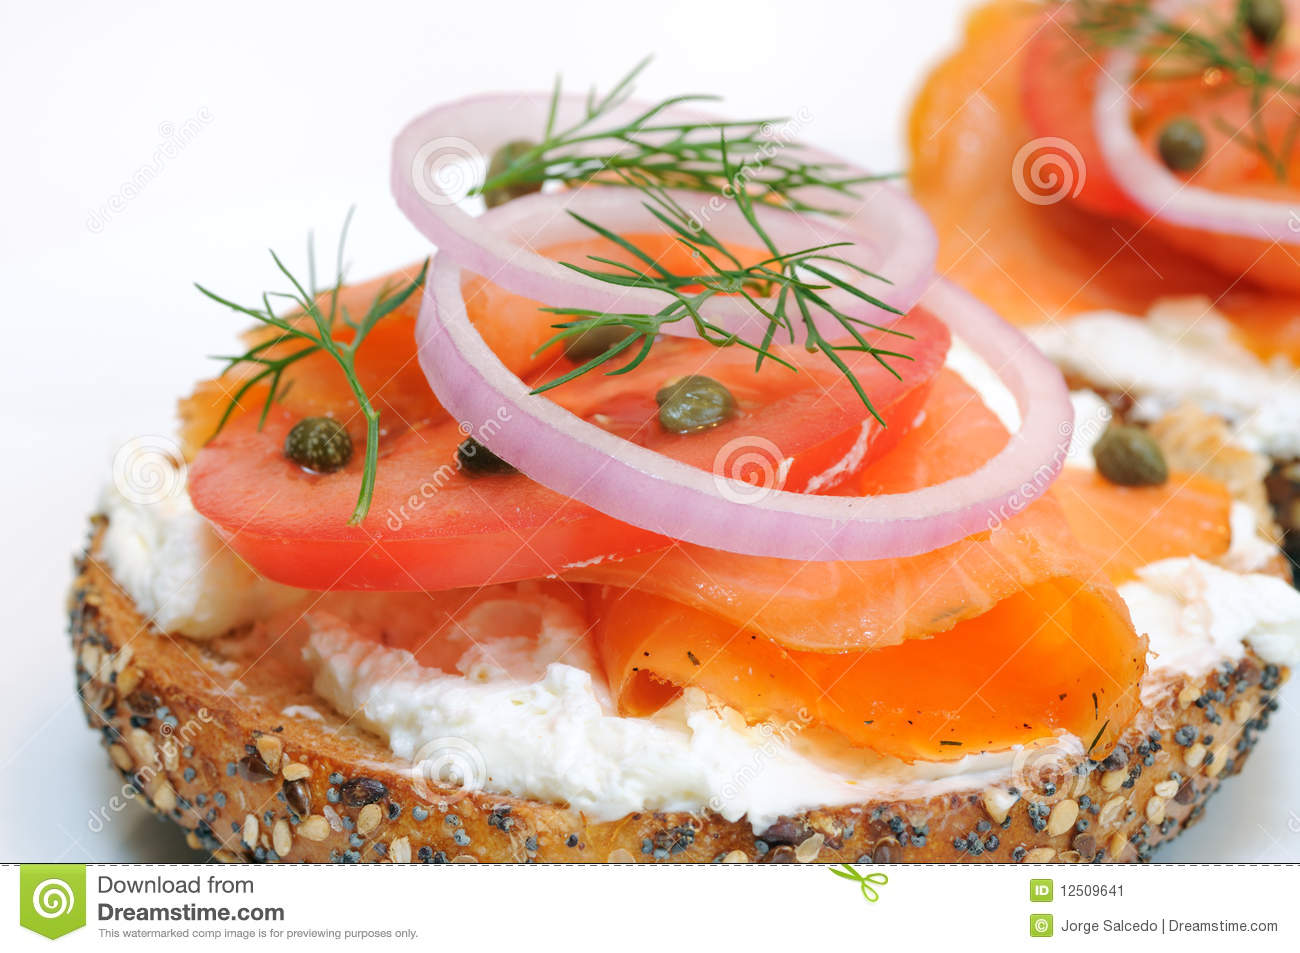 how to make lox and bagels